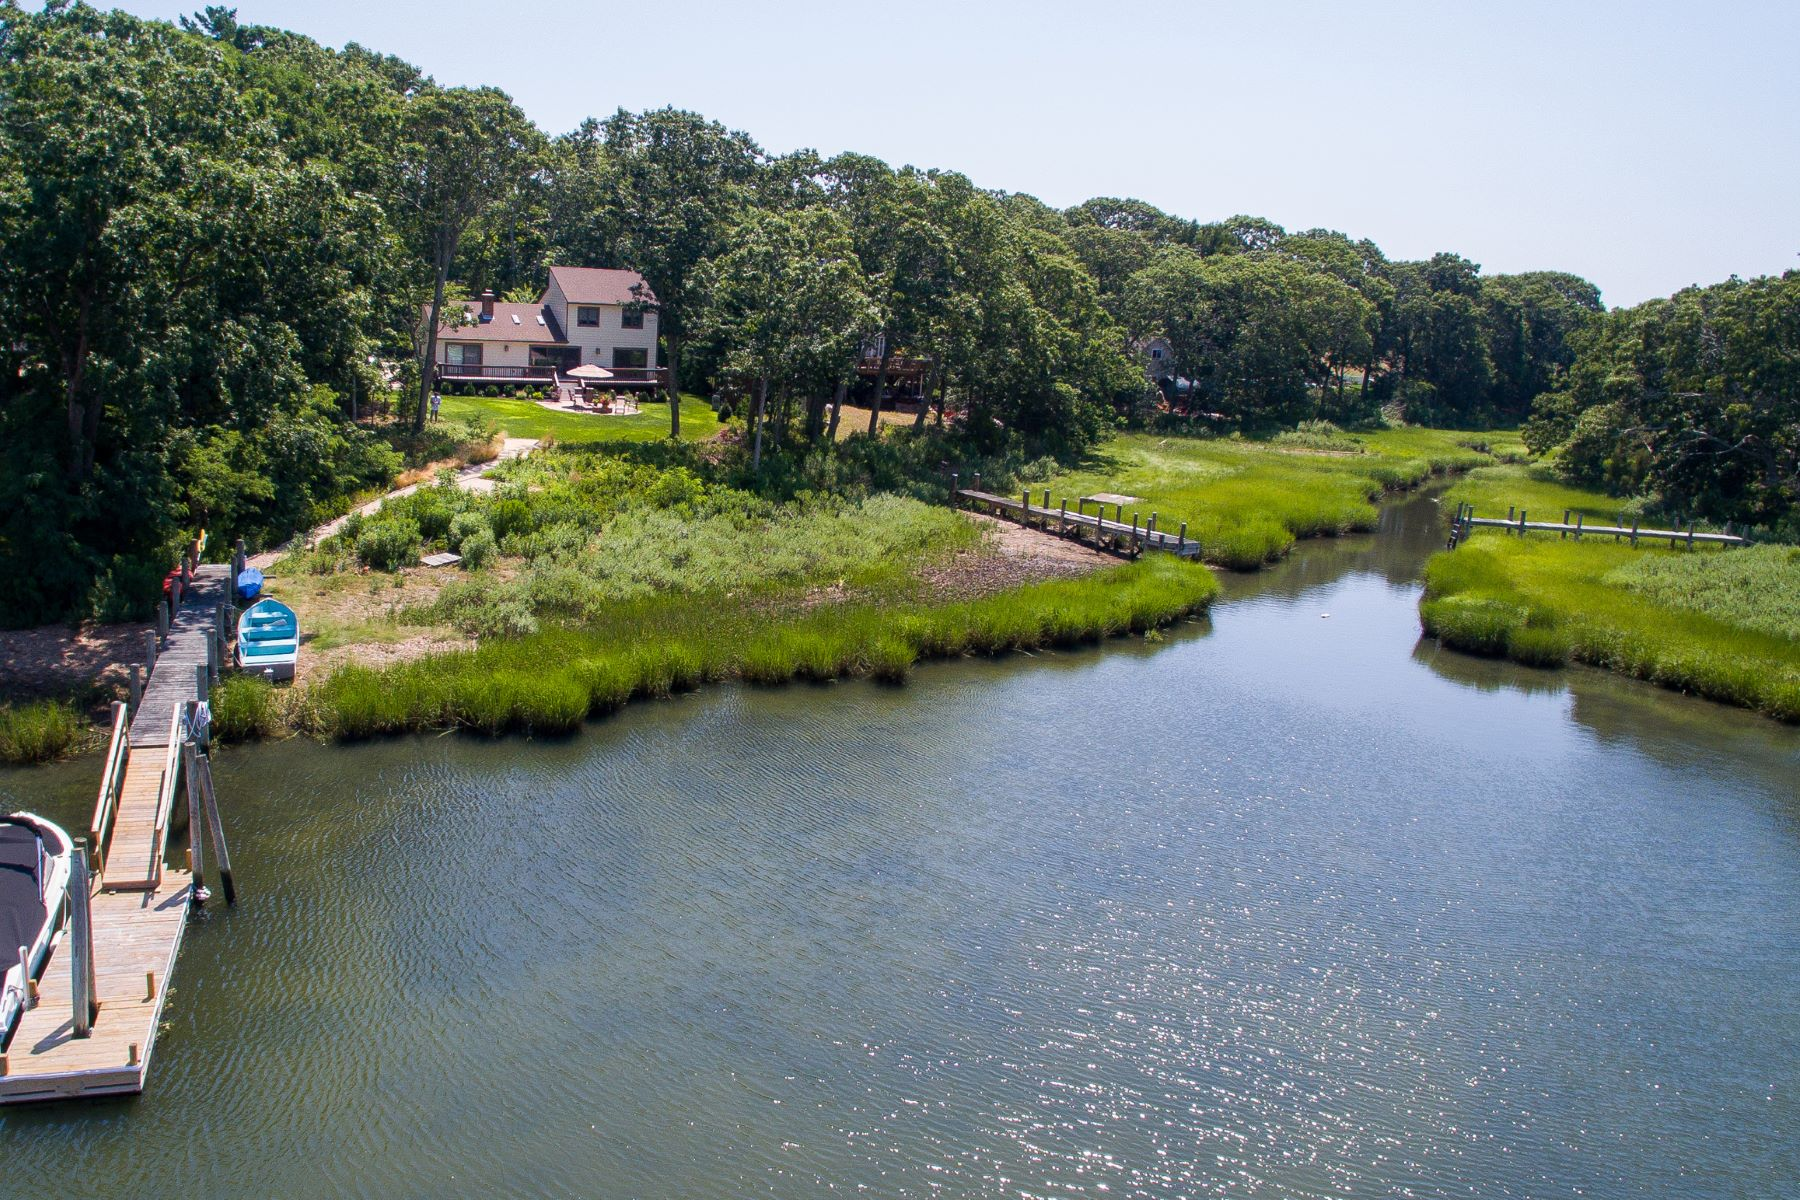 Single Family Home for Sale at 387 Wood Ln , Peconic, NY 11958 387 Wood Ln Peconic, New York, 11958 United States